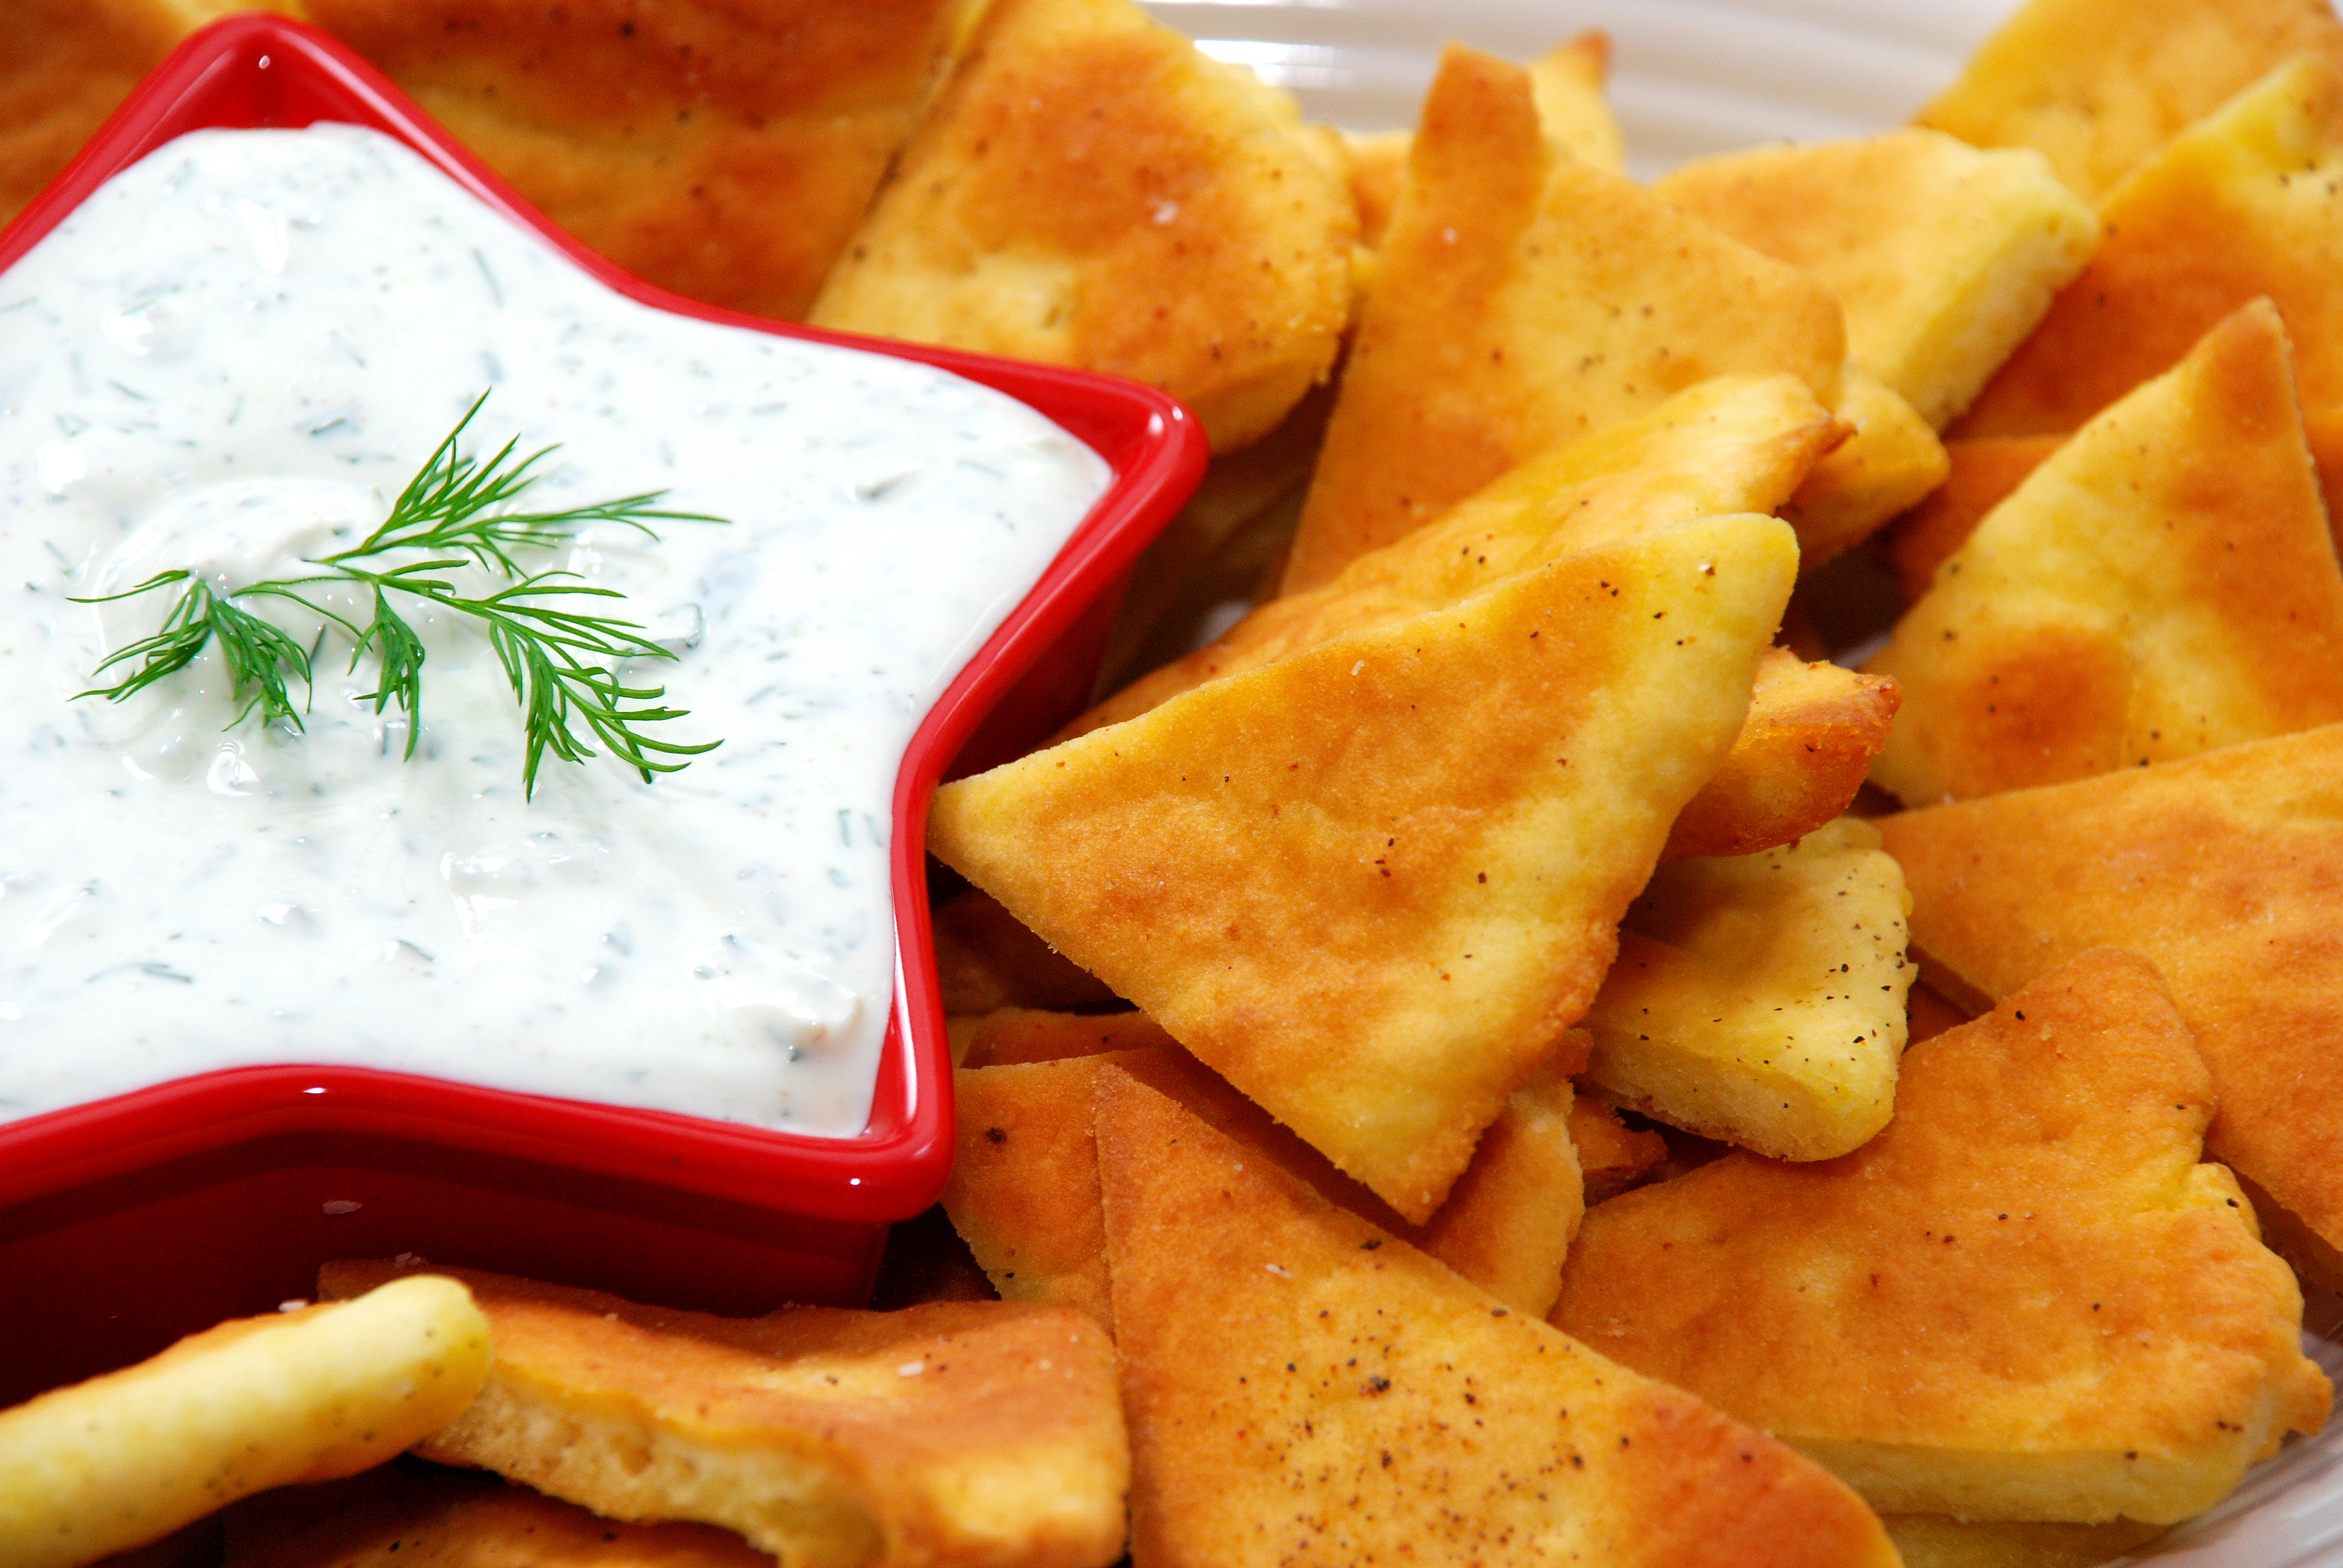 Baked Pita Chips with Creamy Dill Dip